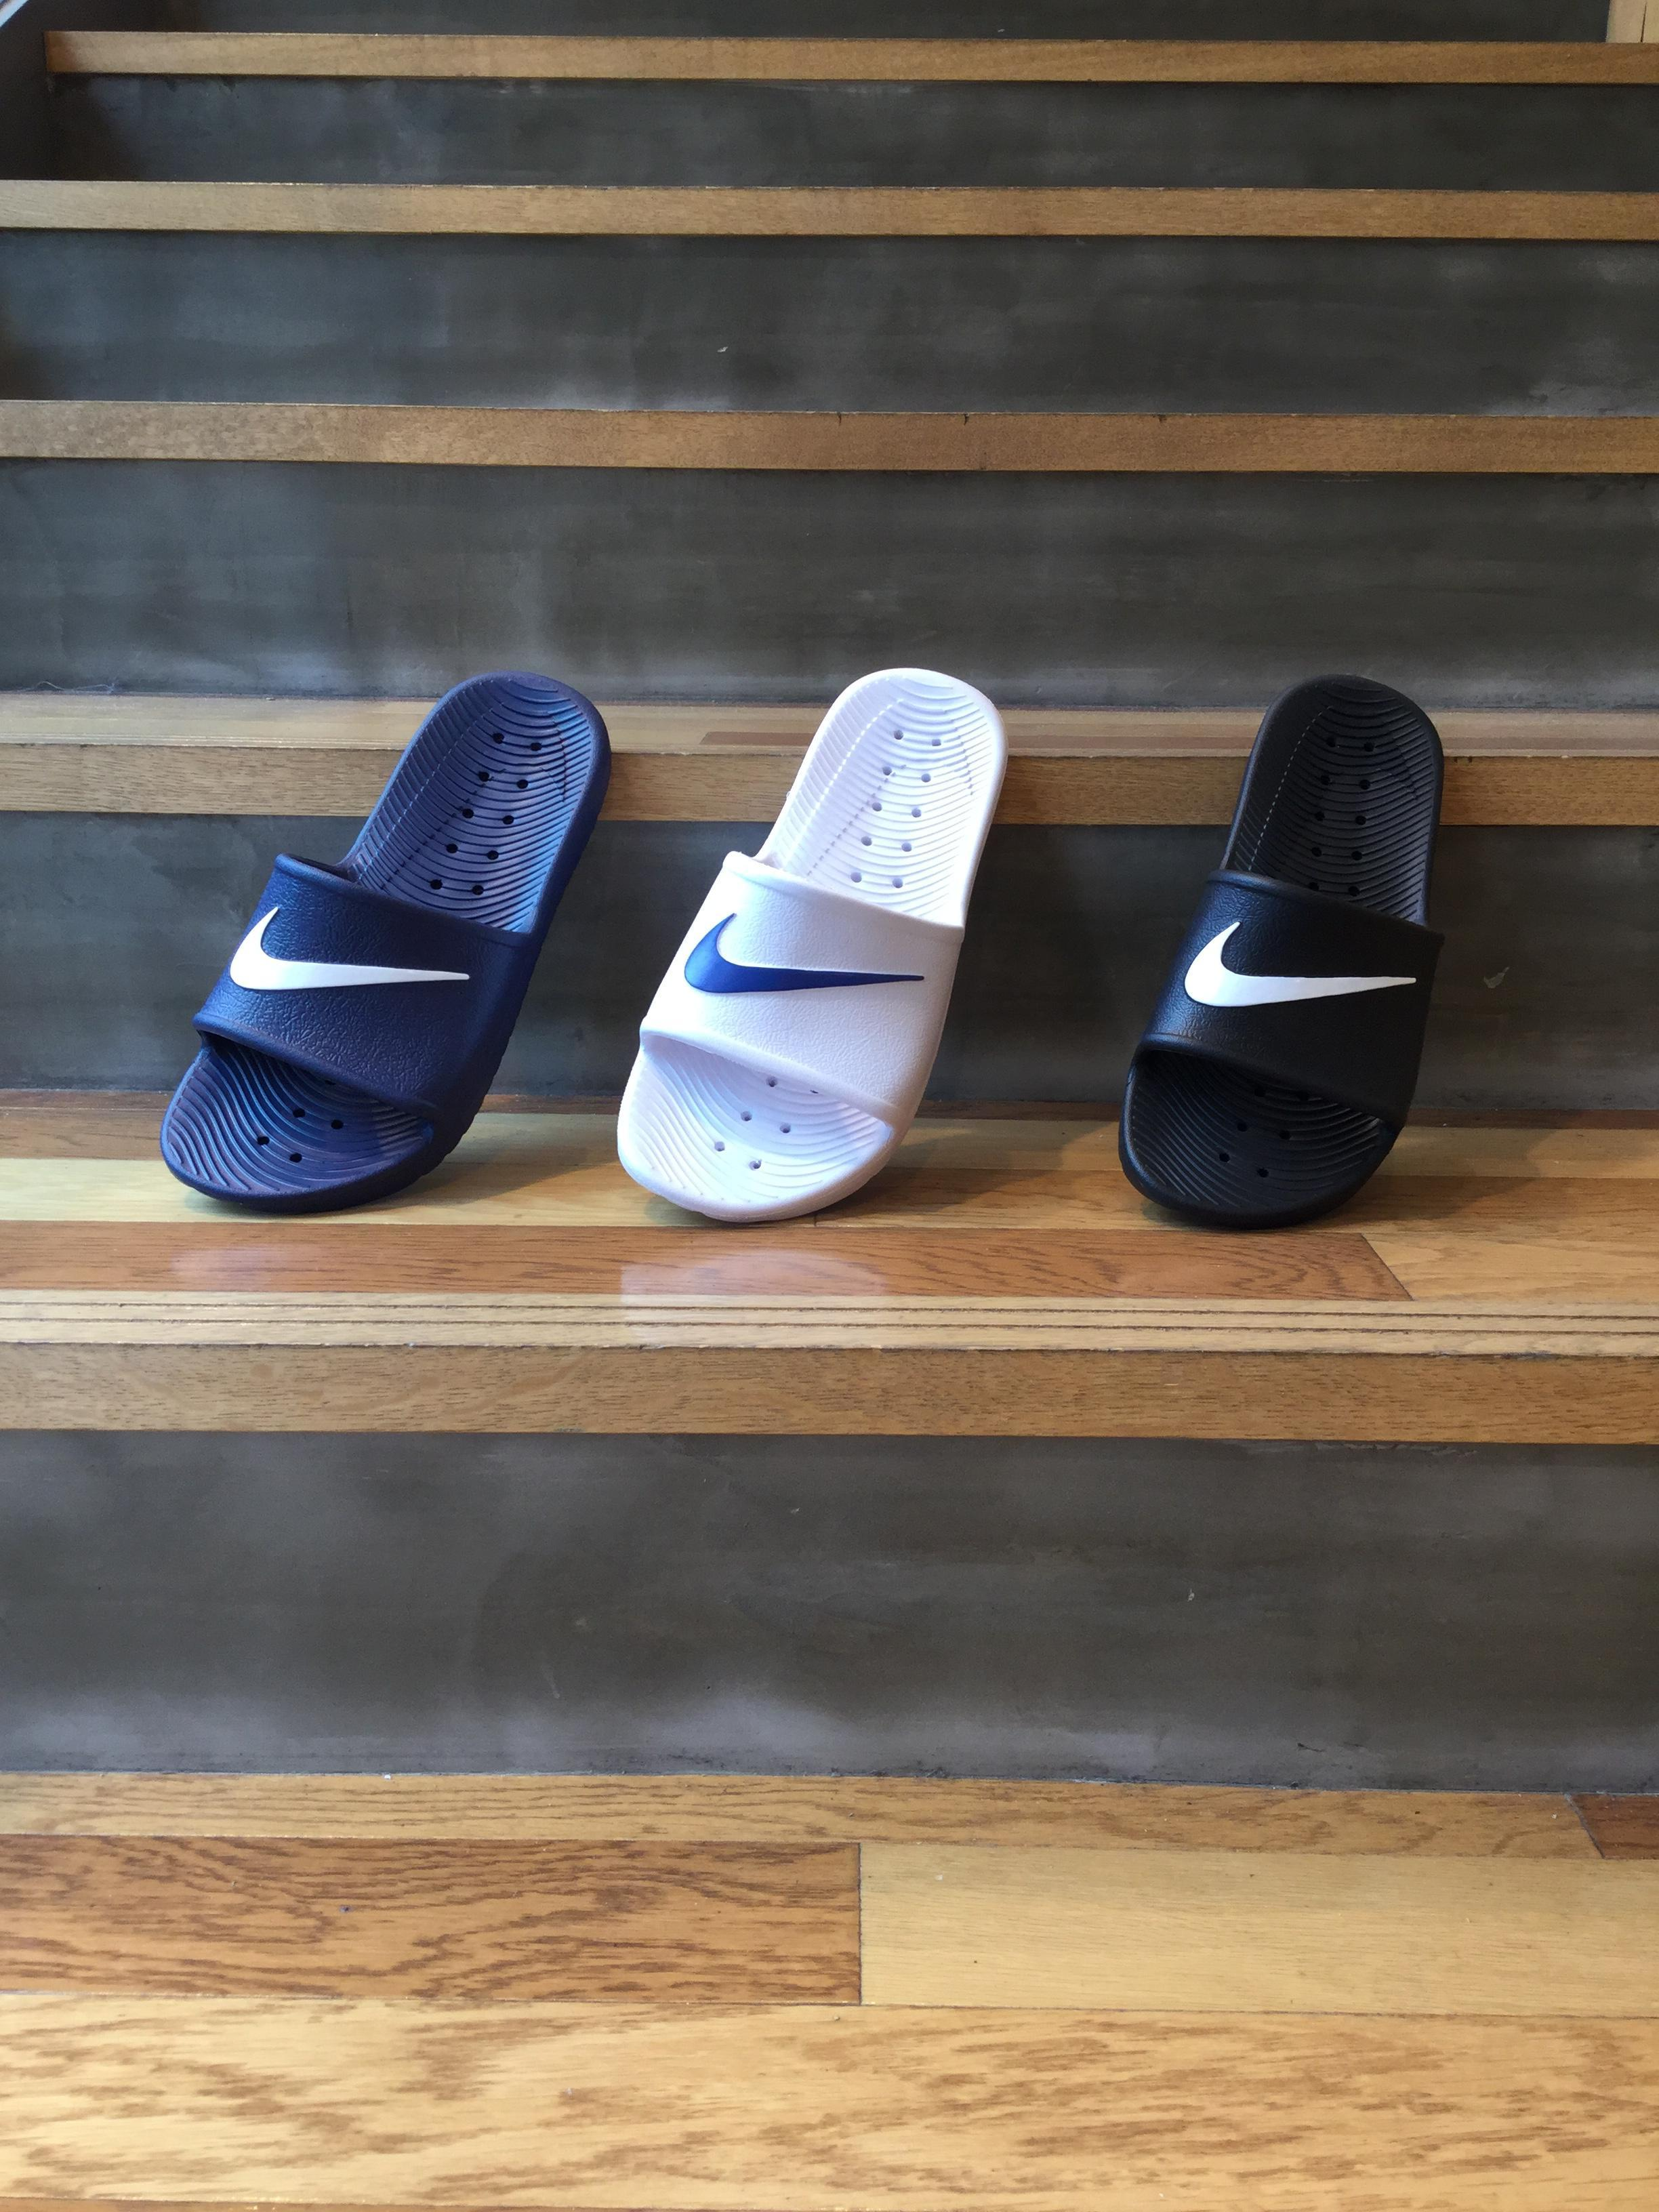 3512f1bec5a398 NEW RELEASE-NIKE SANDAL COLLECTION- - NikeFukuoka STORE BLOG